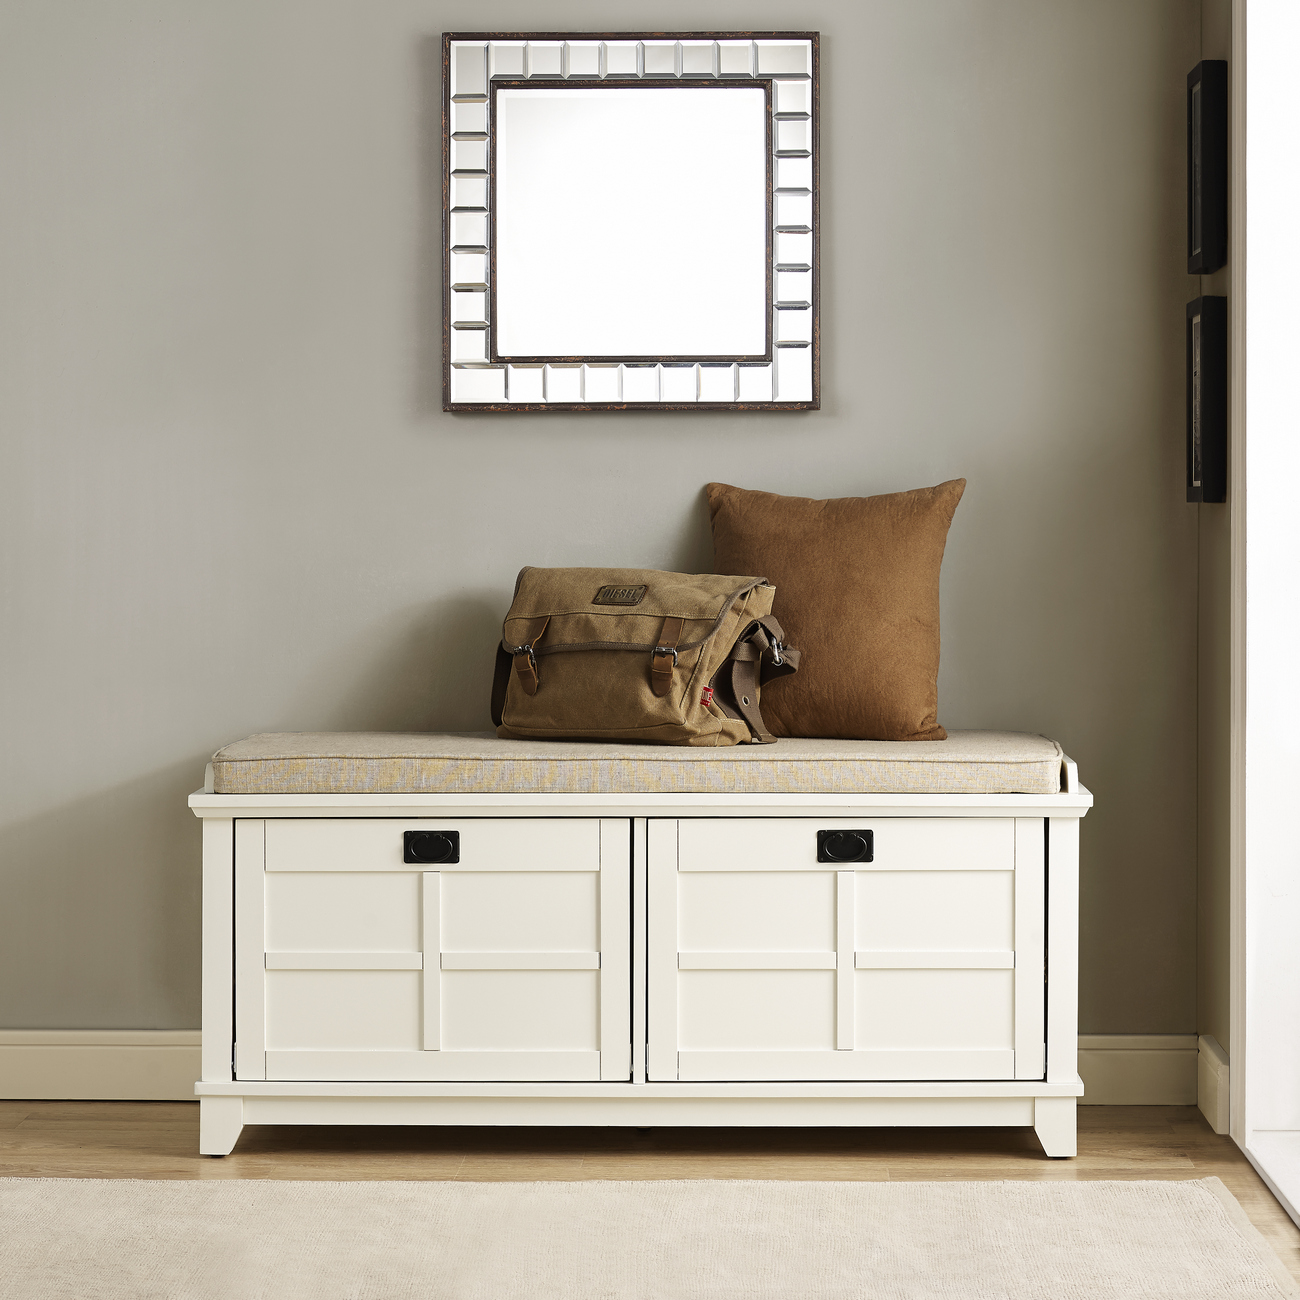 Adler Entryway Bench in White Finish - Crosley CF6009-WH